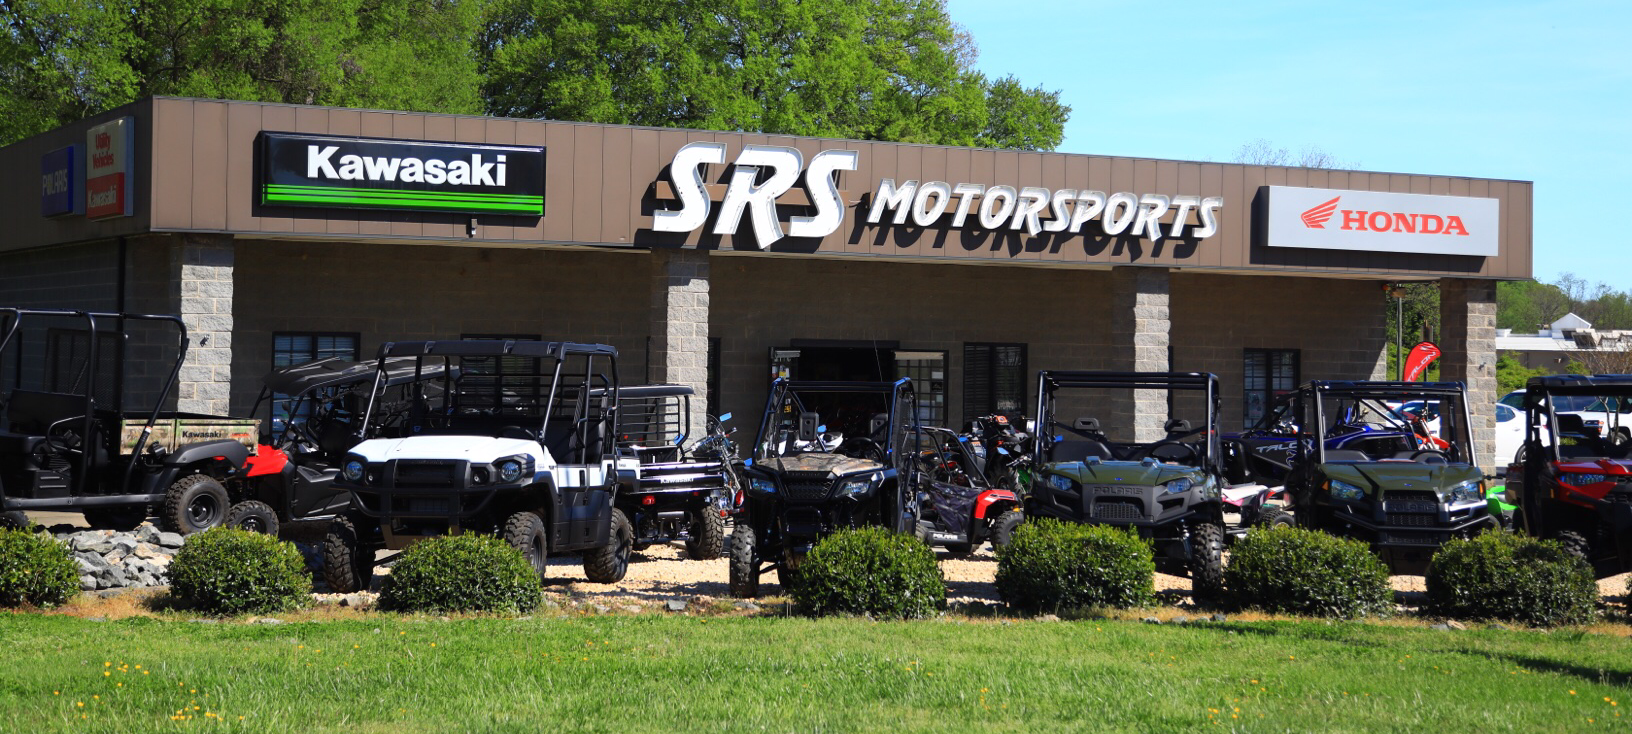 SRS Motorsports | Greensboro, NC | Powersports Dealership